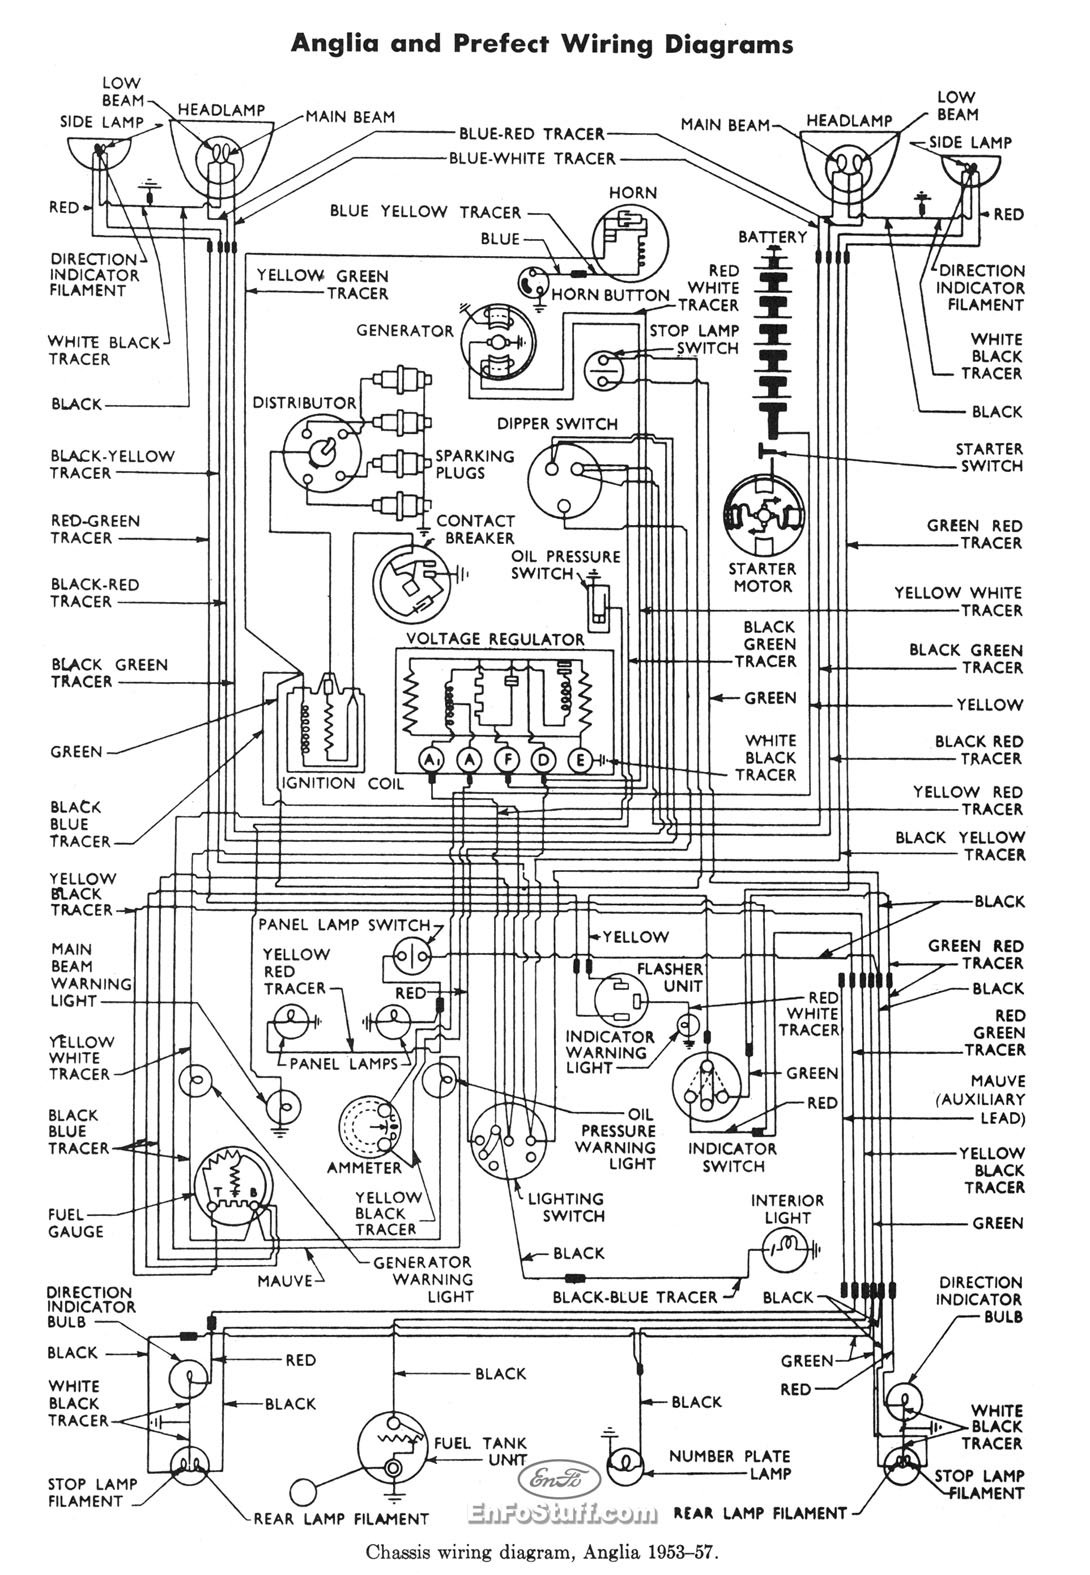 ford anglia 1953 57 wiring diagram wiring diagram for ford anglia 1953 57 1953 ford wiring diagram at gsmx.co